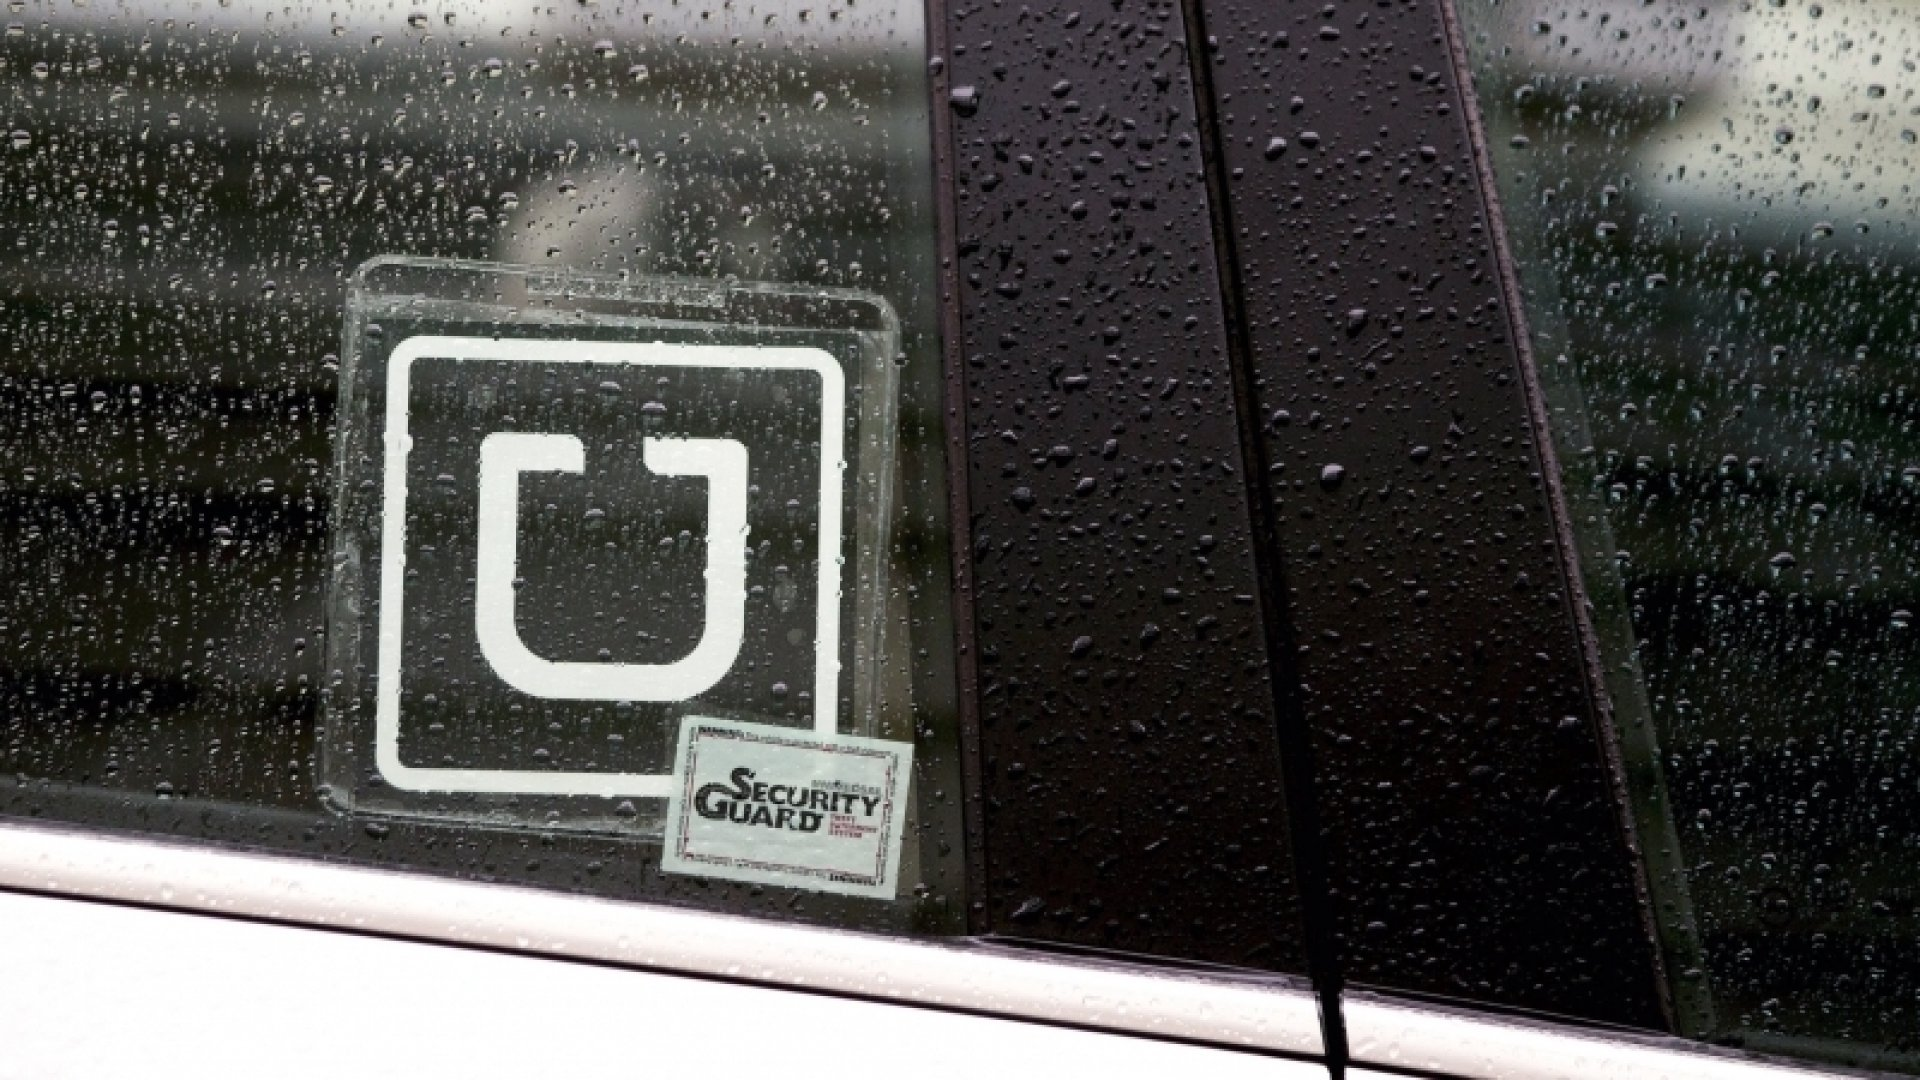 Uber Partners With University to Work on Mapping, Self-Driving Cars